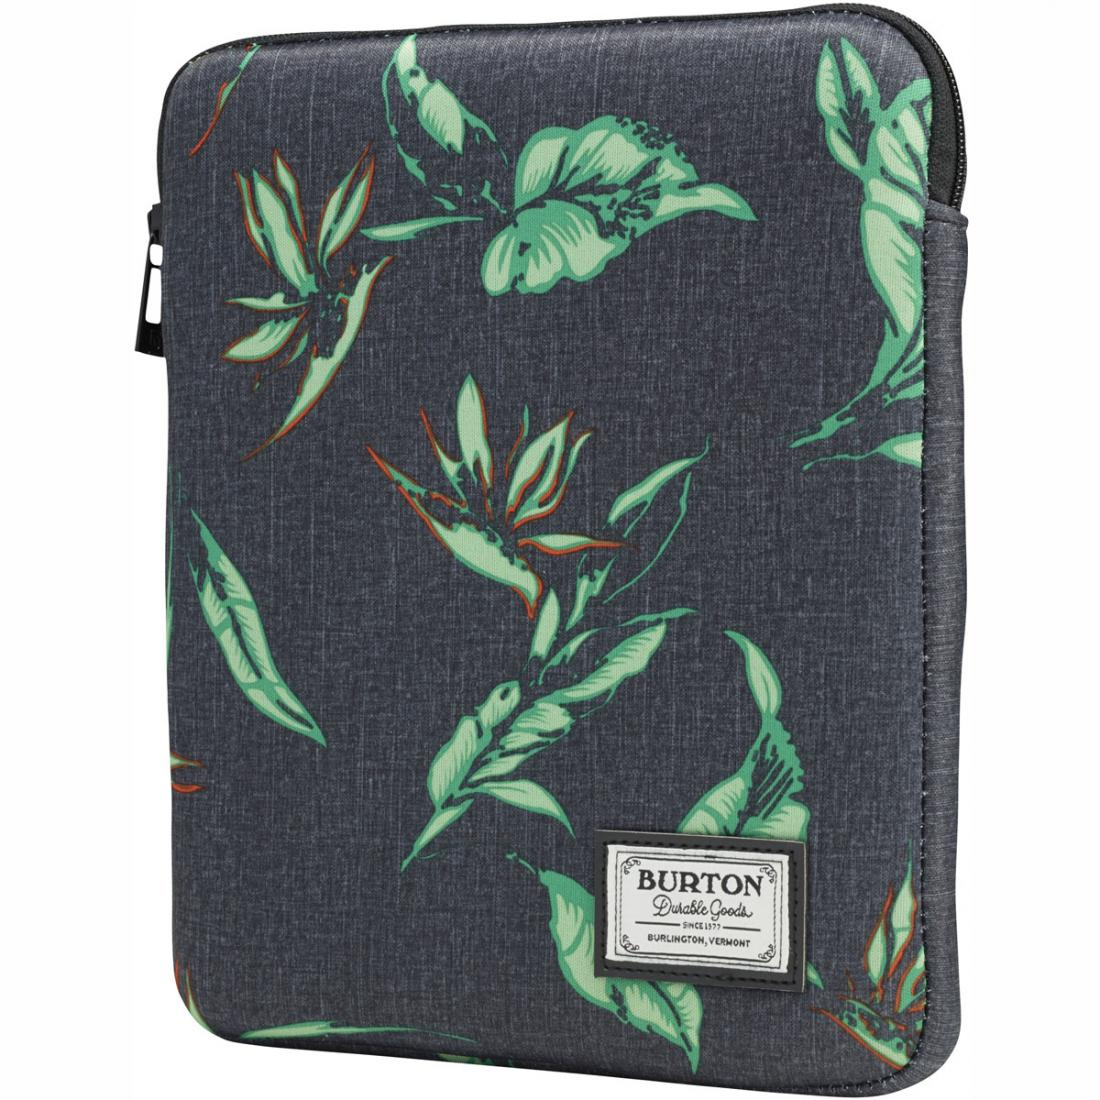 Burton Сумка для дорож.принадлежностей TABLET SLEEVE (, HAWAIIAN HEATHER, , WIN14) burton футболка burton deadwood rec heather night rider